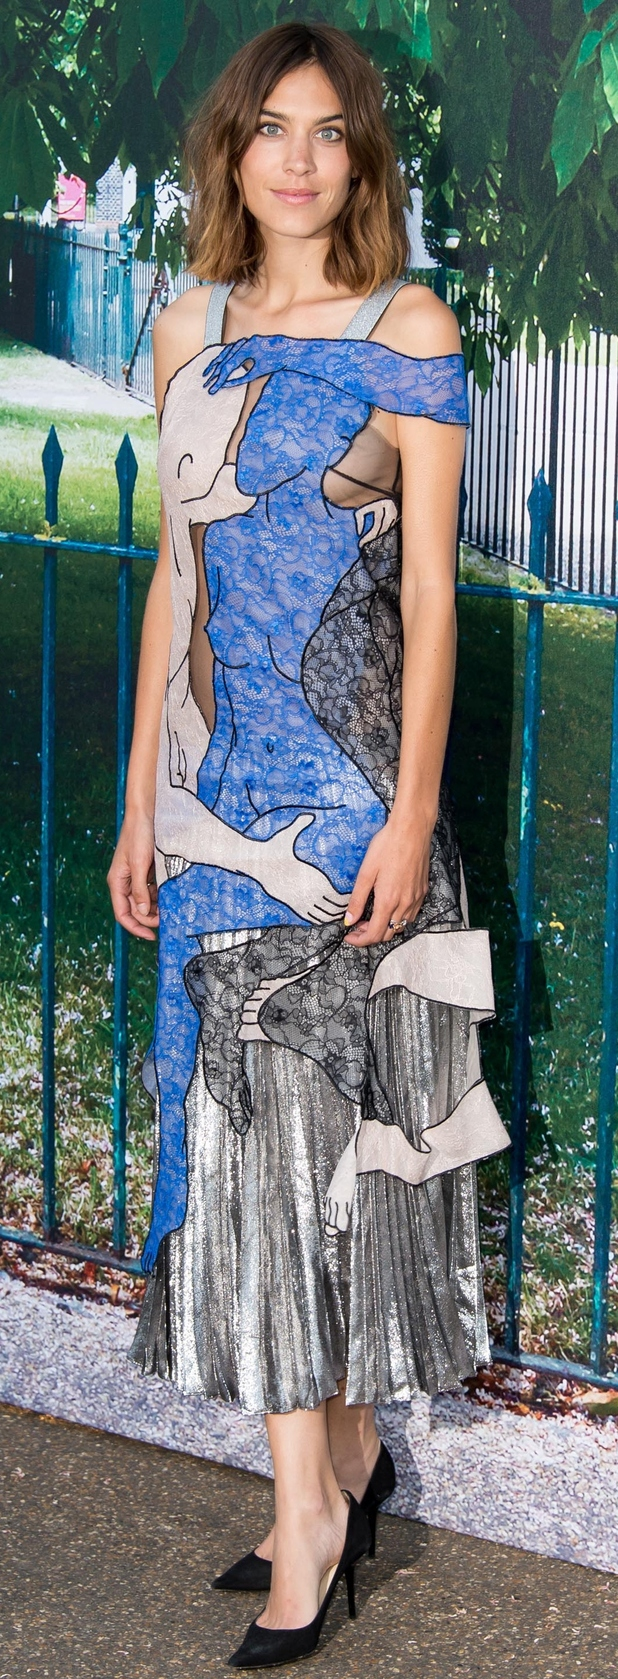 Alexa Chung at Serpentine Gallery party in London 2nd July 2015